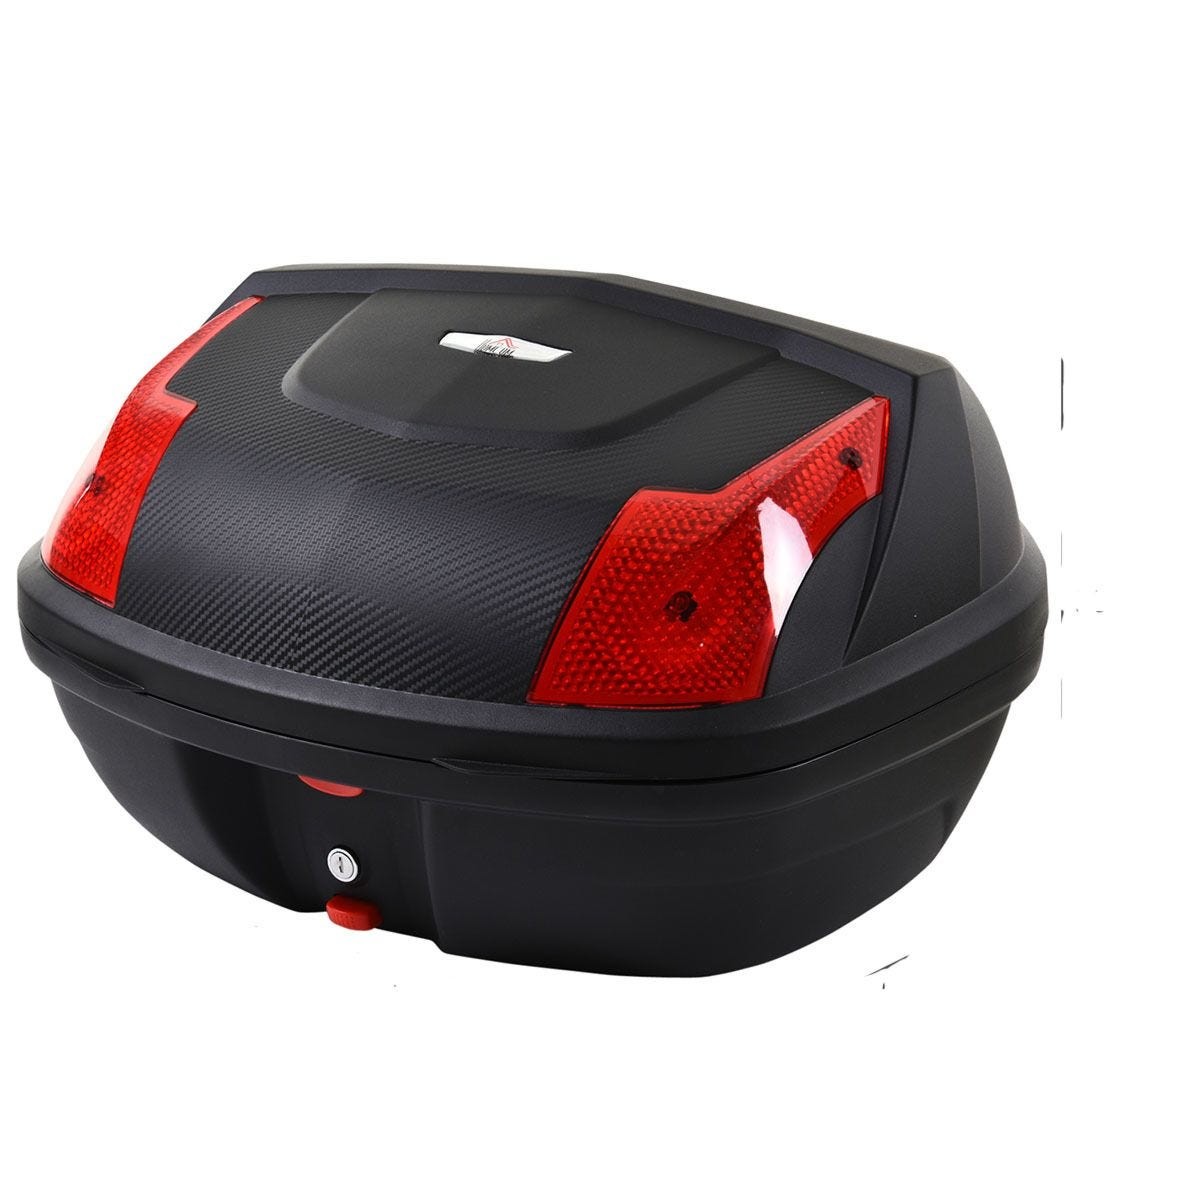 HOMCOM 48L Plastic Motorcycle Trunk with Reflector - Black